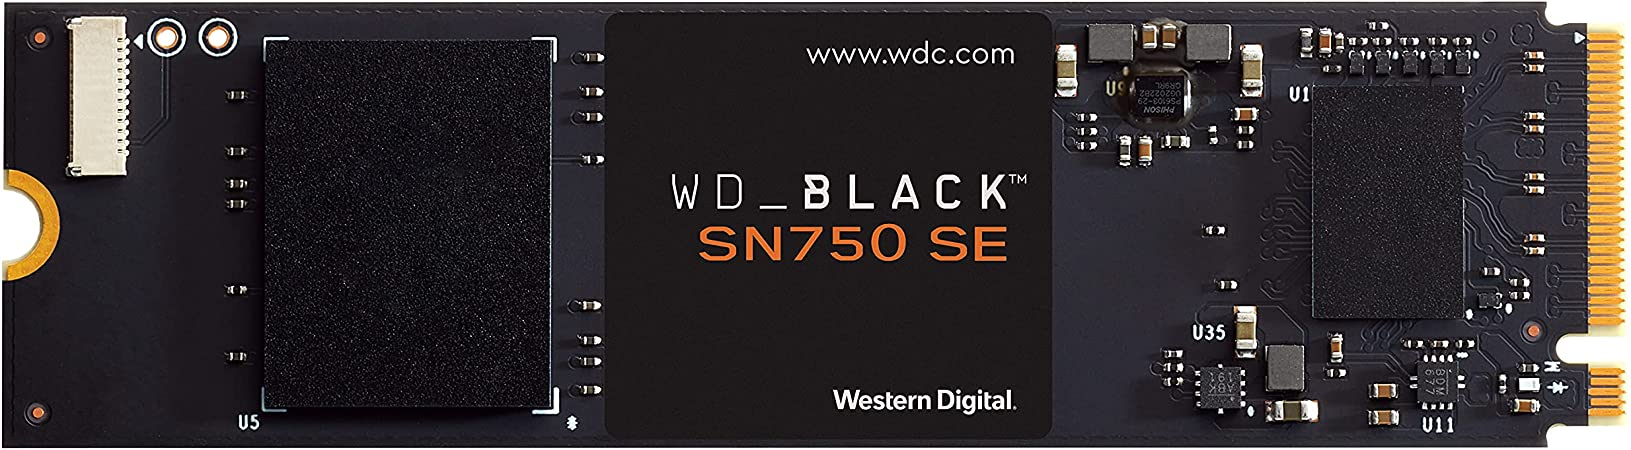 WD_BLACK 1TB SN750 SE NVMe Internal Gaming SSD Solid State Drive  Gen4 PCIe M2 2280 Up to 3600 MBs  WDS100T1B0E at Kapruka Online for specialGifts